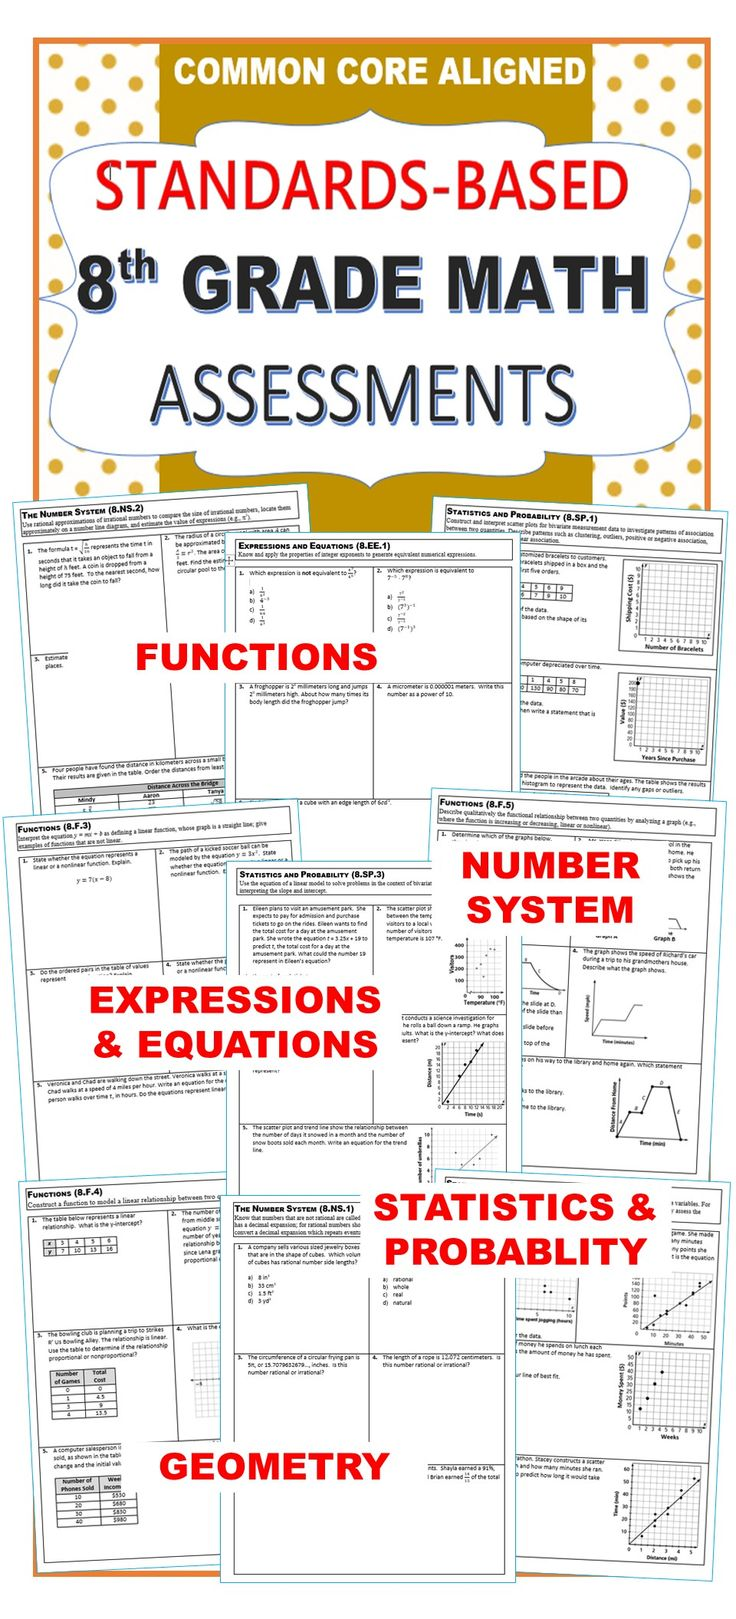 8th Grade Math Standards Based Assessments * All Standards* Common Core 1 page quick assessment for every common core math standard for 8th grade. It also contains a student checklist for each domain to track your students' mastery of these standards. Additionally, I have included a class tracking sheet to look at all of your students progress at a glance.   The Number System (8NS)  Expressions and Equations (8EE)  Functions (8F)  Geometry (8G)  Statistics and Probability (8SP)